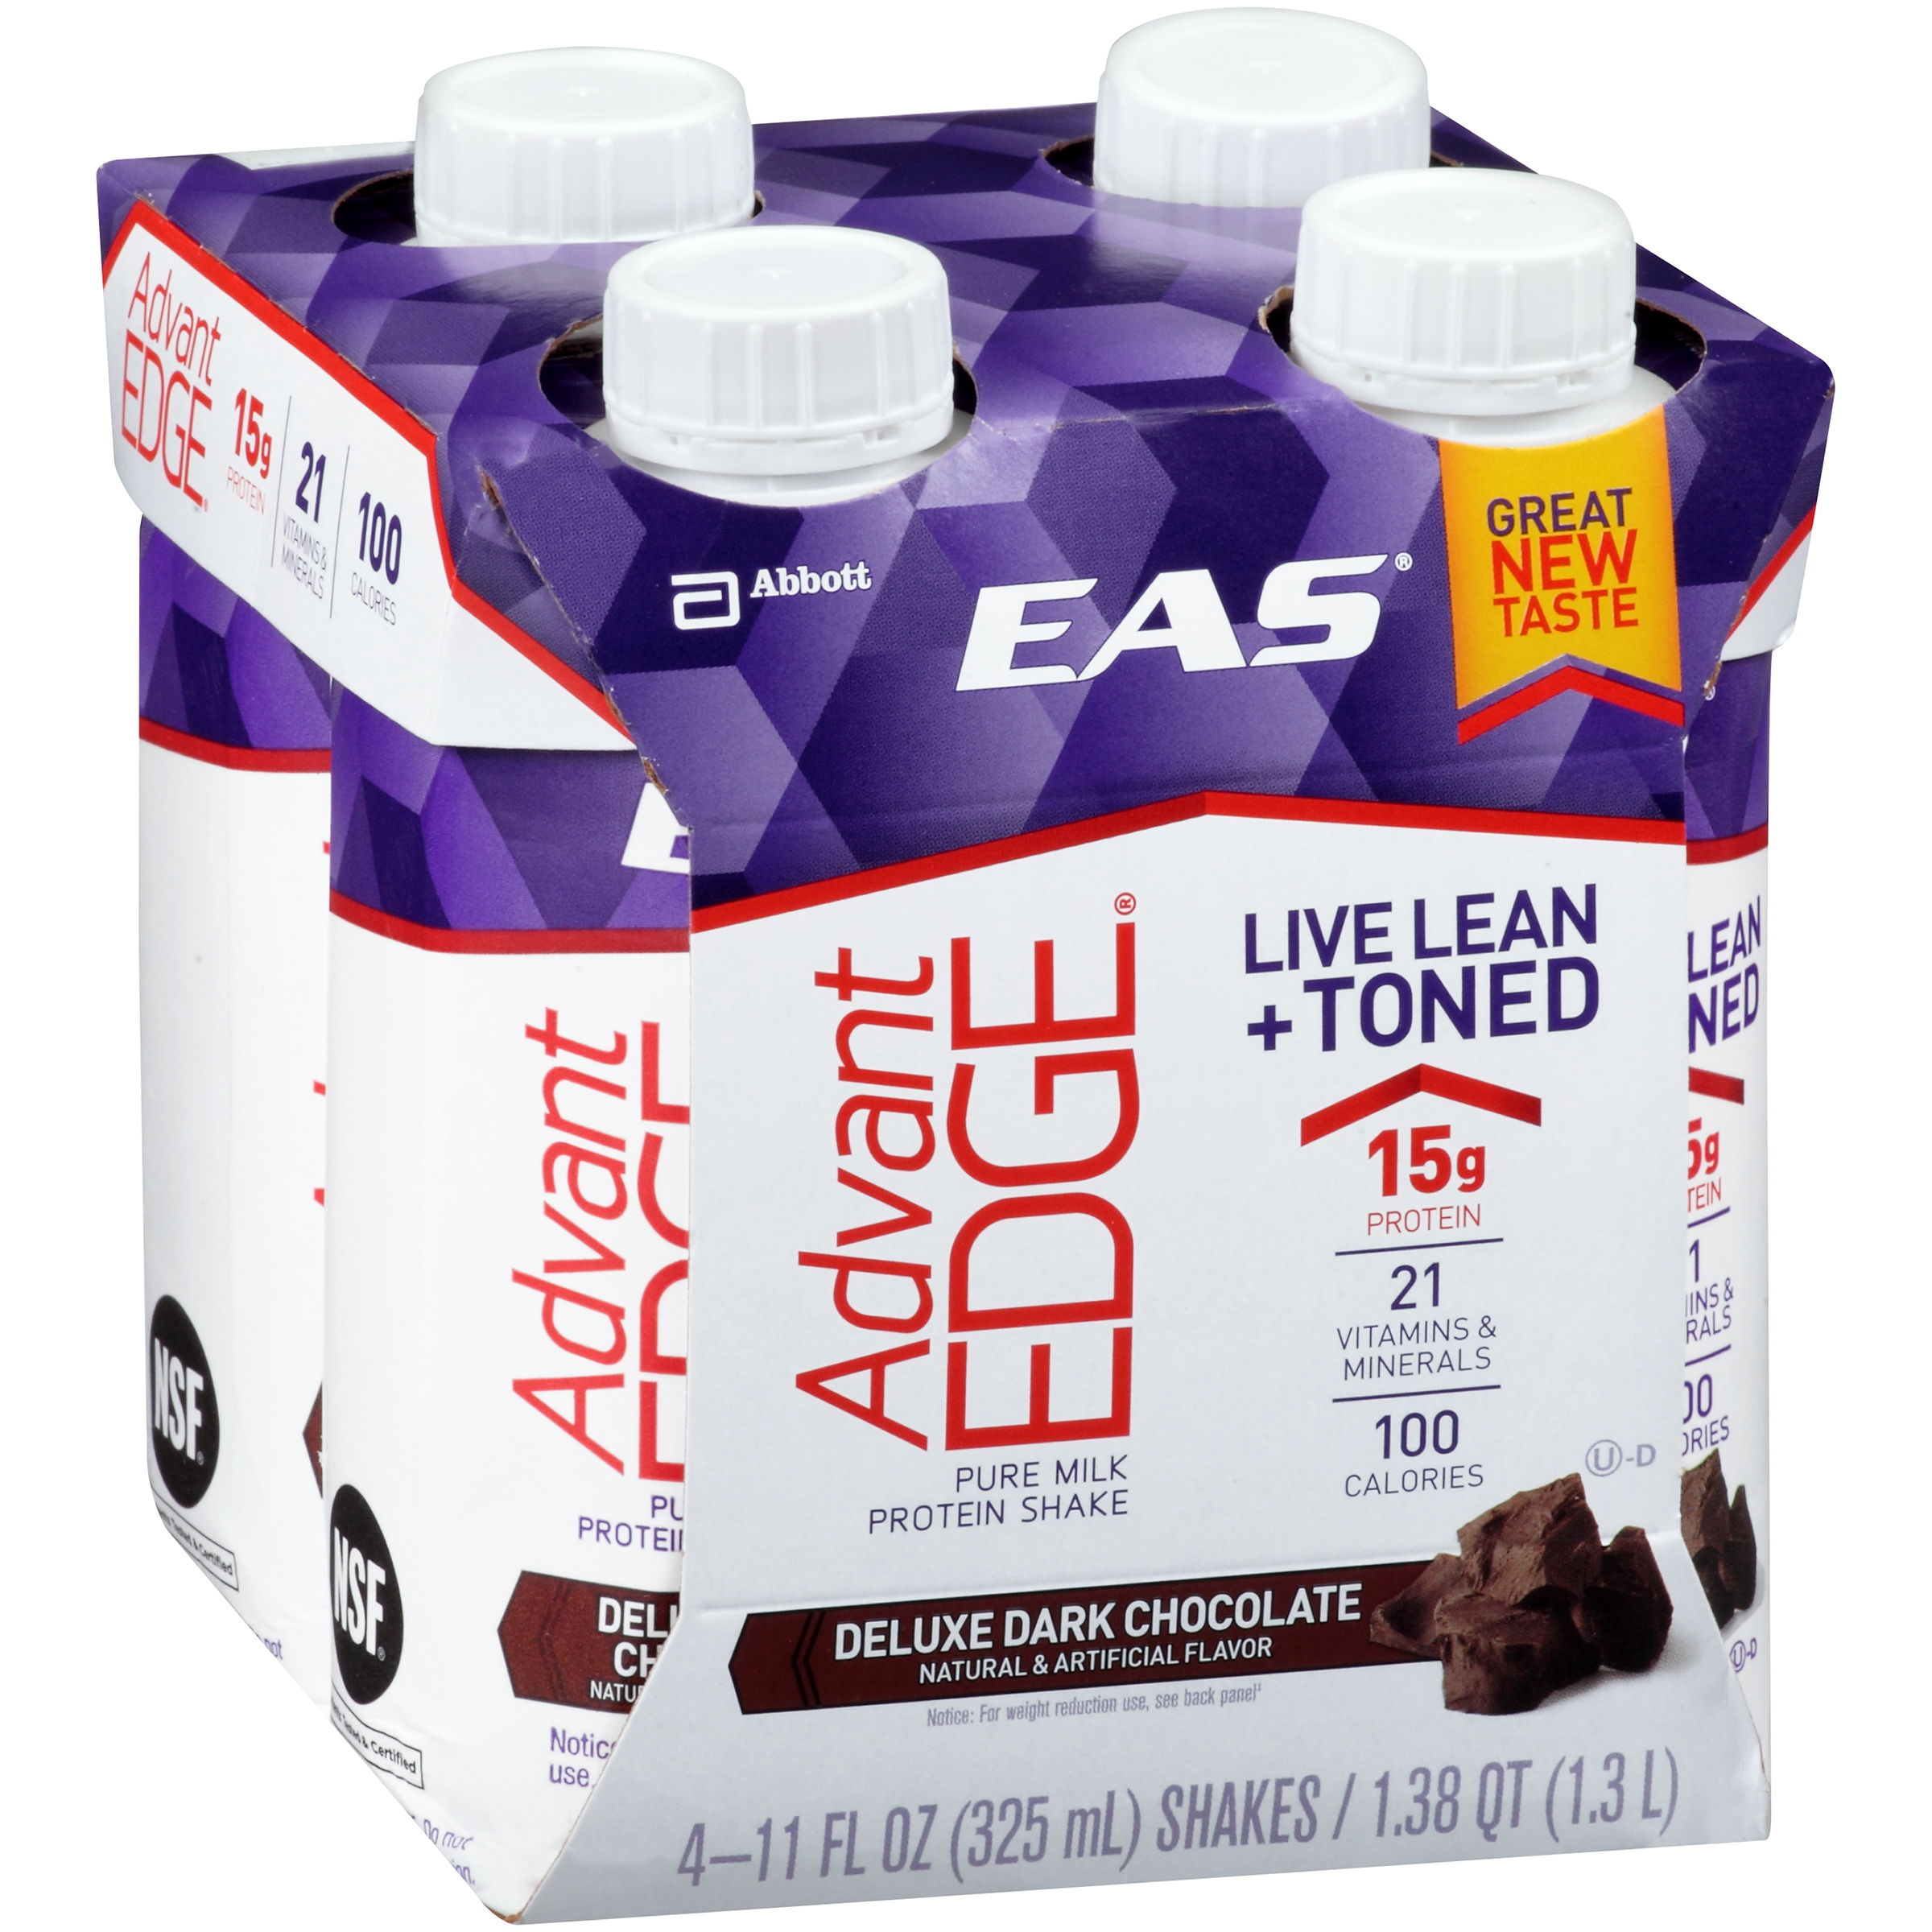 EAS�� AdvantEdge�� Pure Milk Deluxe Dark Chocolate Protein Shake 4-11 fl. oz. Cartons